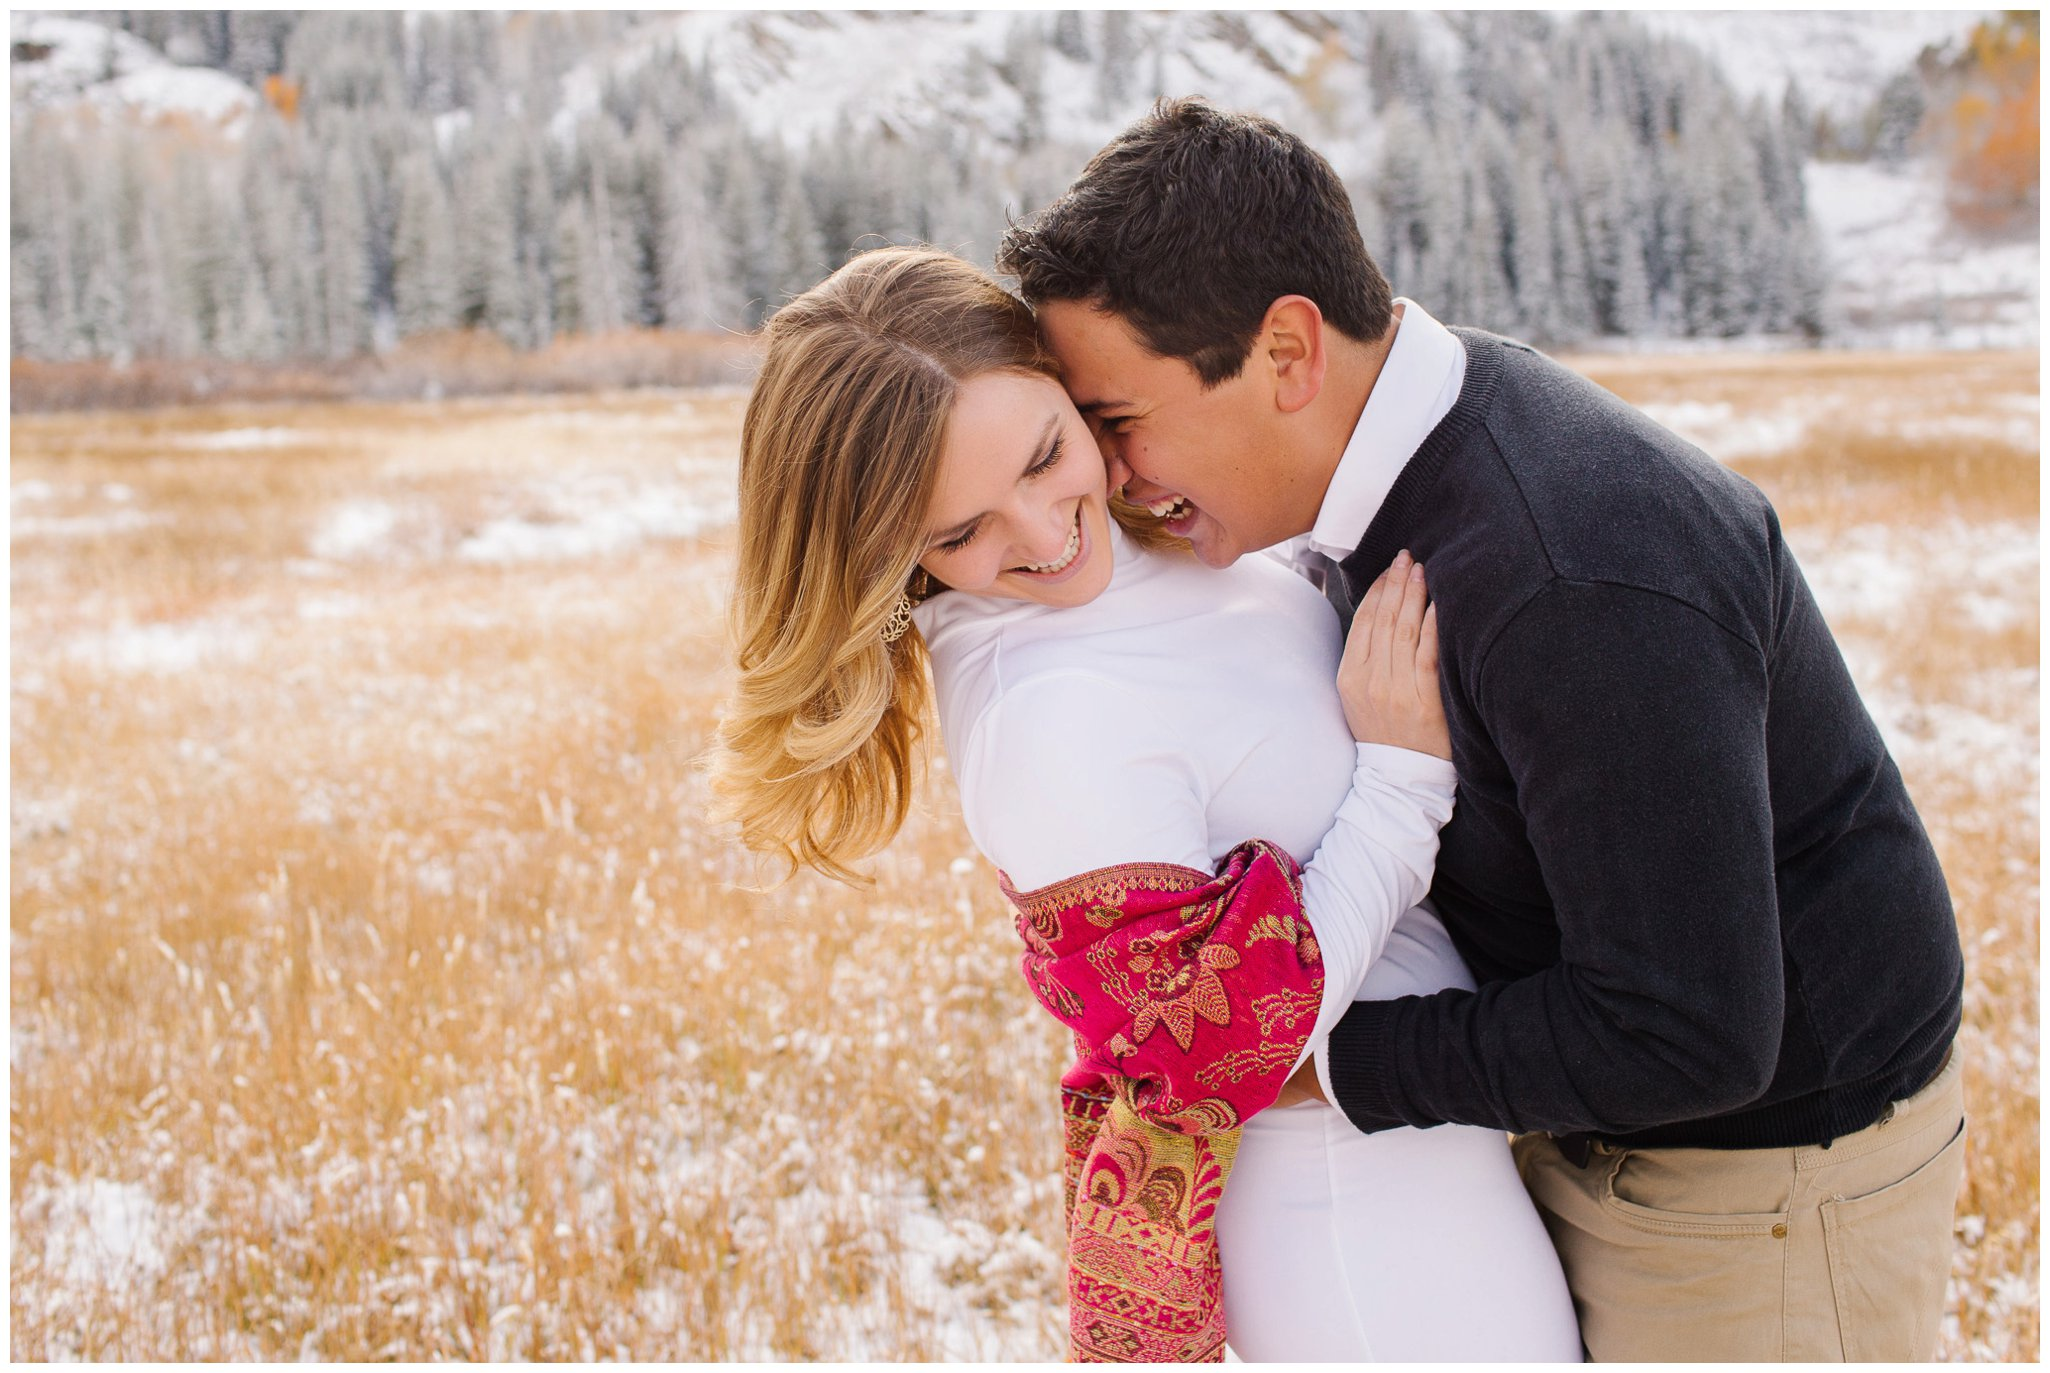 Jamie Tervort Photography | Emily and Natha Engagements, Utah engagement photographer, snowy winter pictures, Silver Lake, Ut